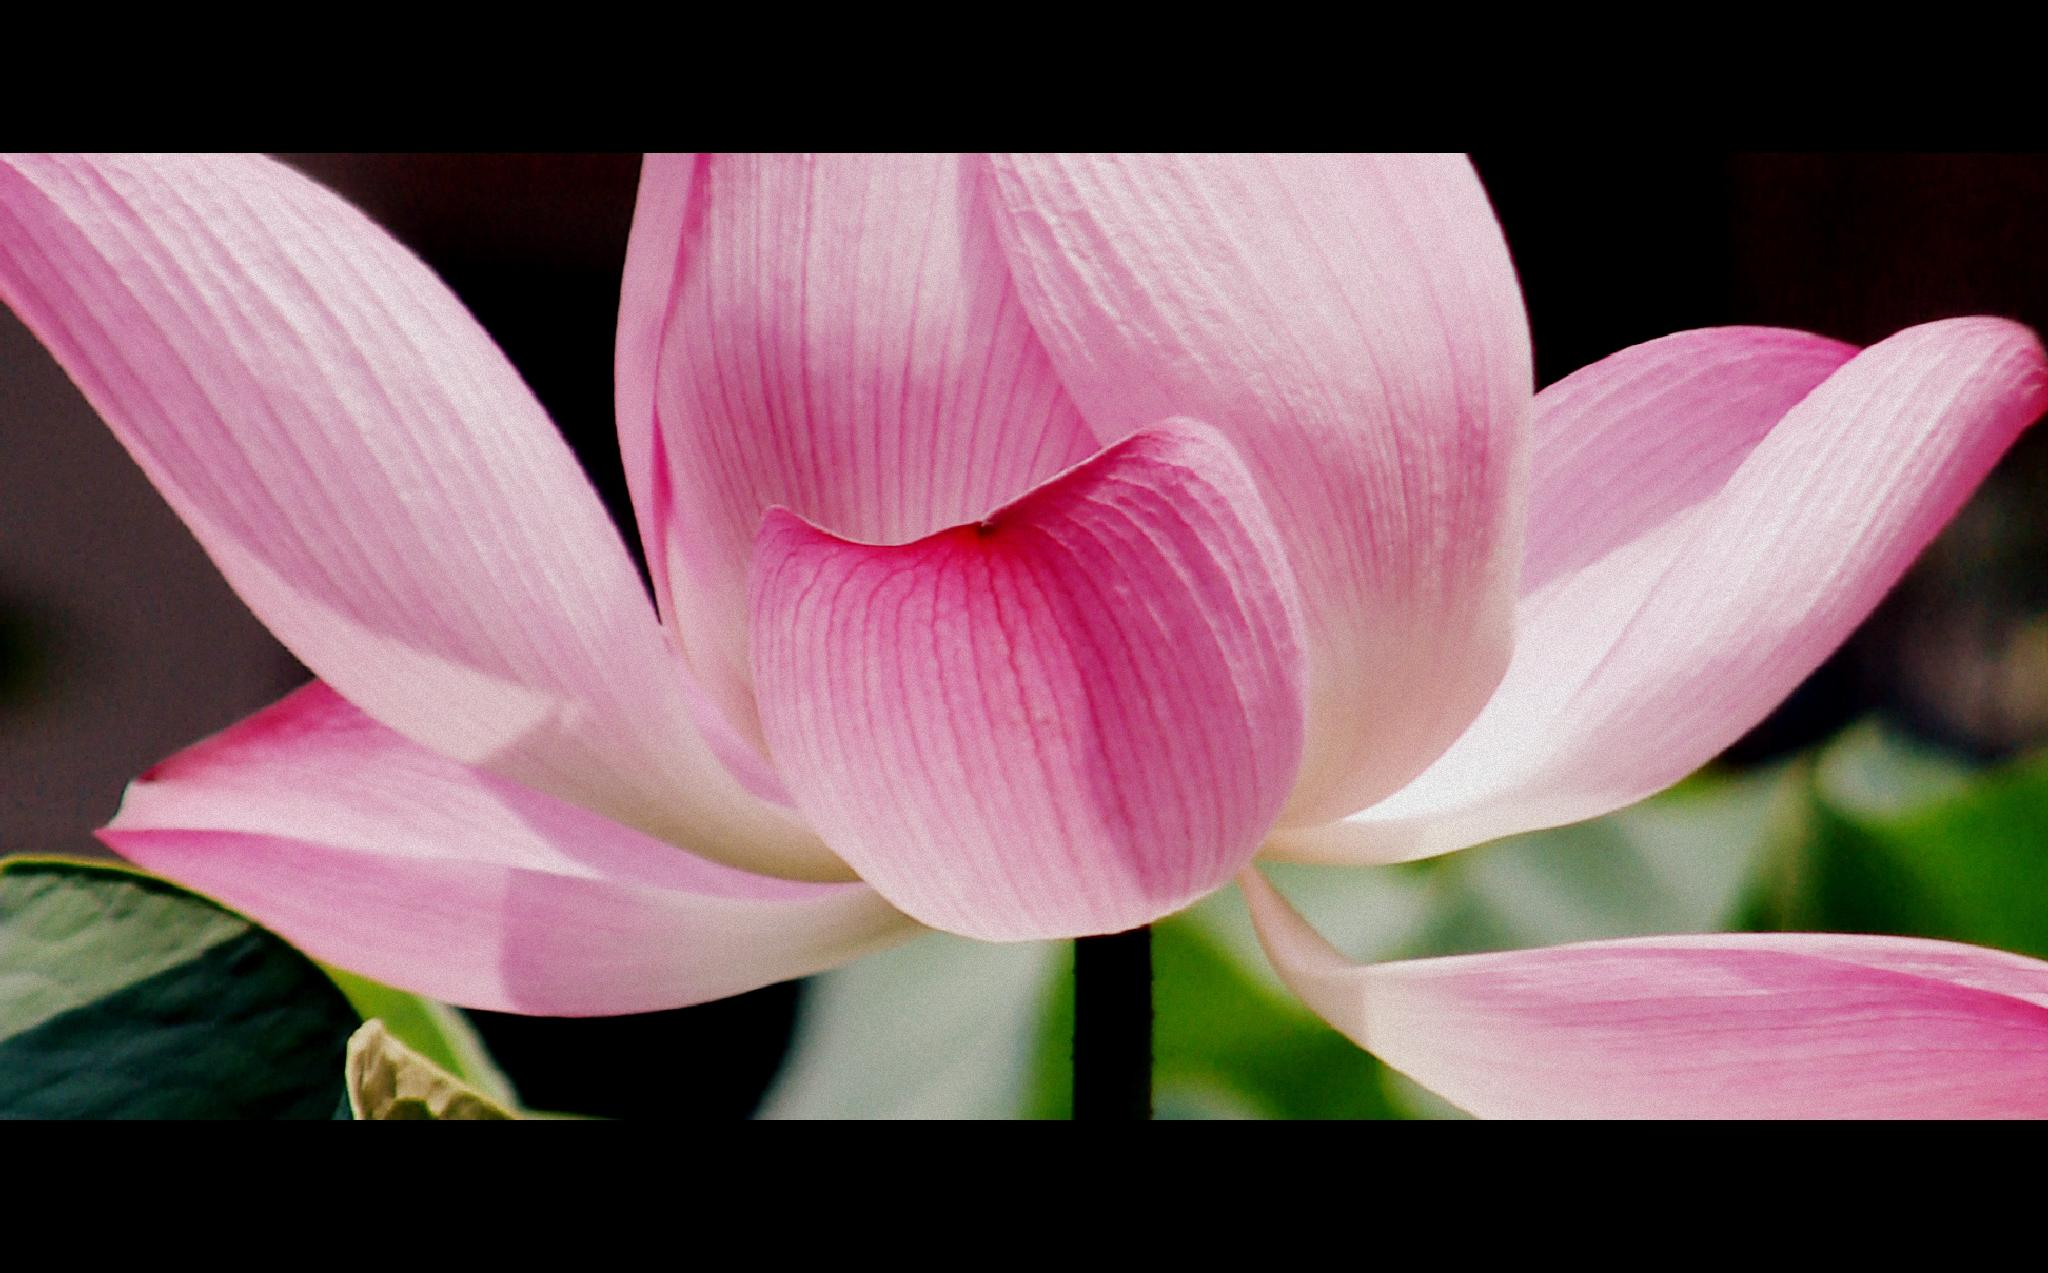 Lotus Flower  by Andreia_Costa